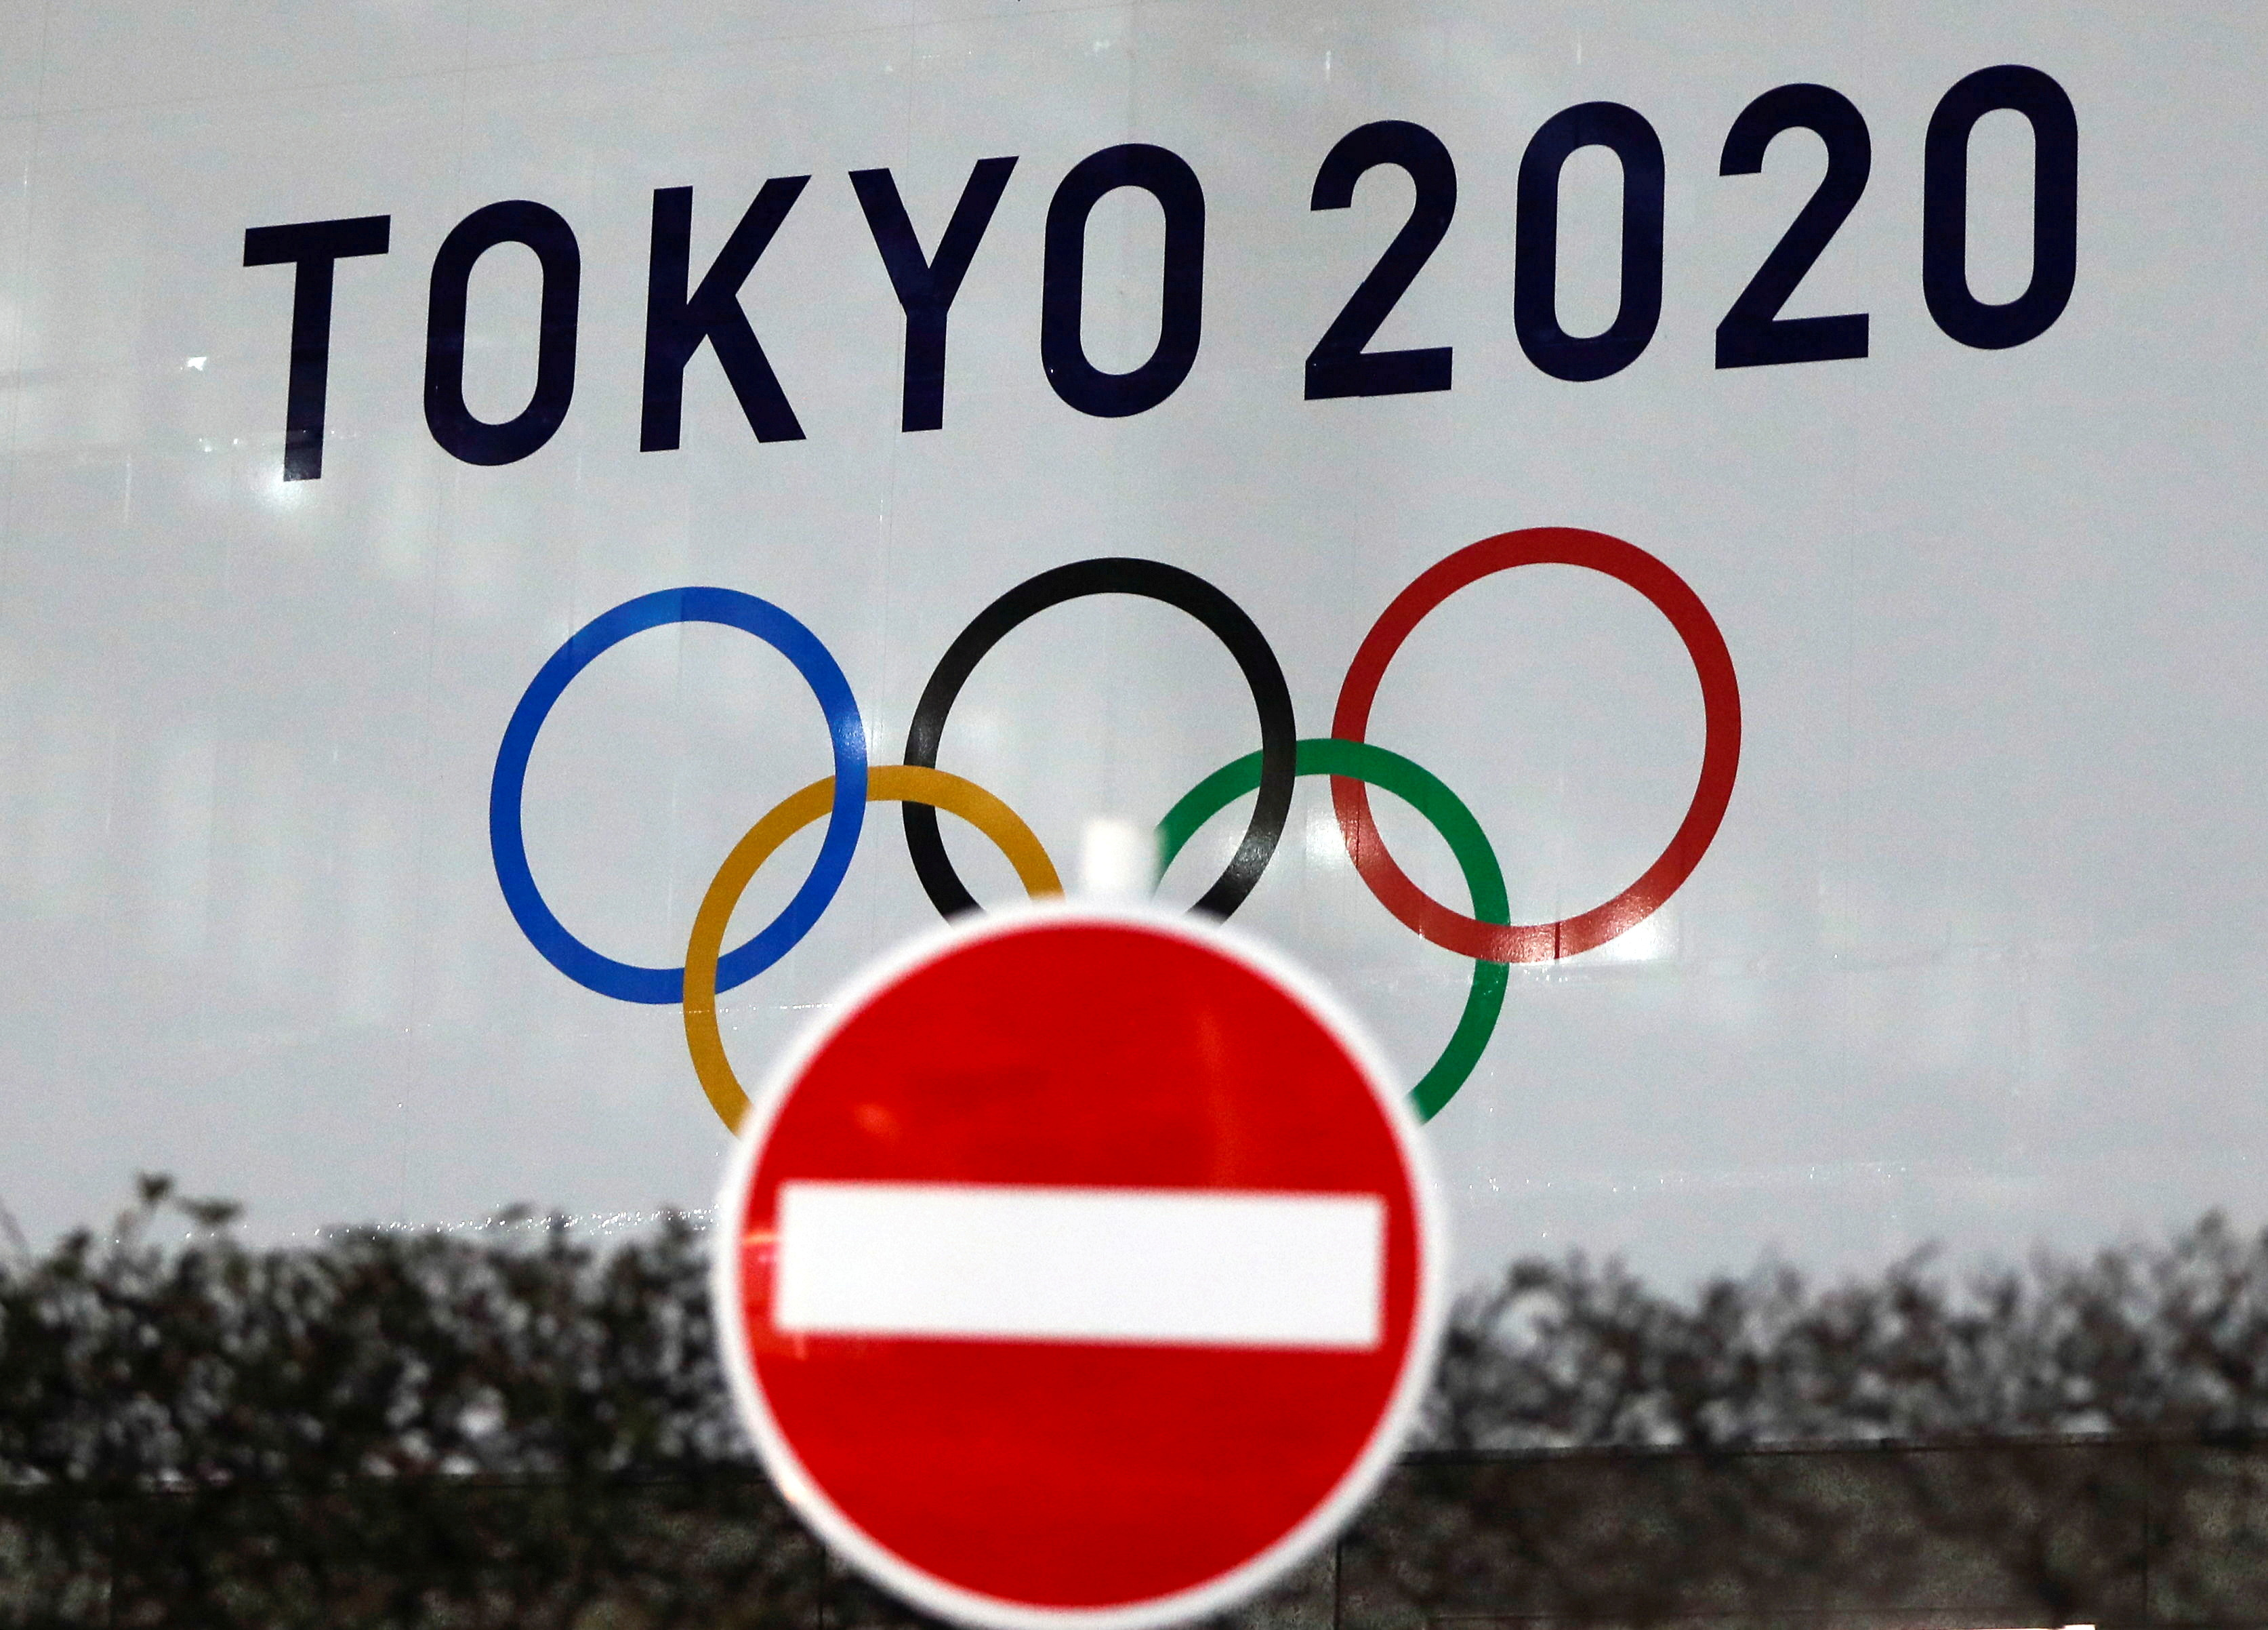 The logo of Tokyo 2020 Olympic Games that have been postponed to 2021 due to the coronavirus disease (COVID-19) outbreak, is seen through a traffic sign at Tokyo Metropolitan Government Office building in Tokyo, Japan January 22, 2021. REUTERS/Issei Kato/File Photo/File Photo